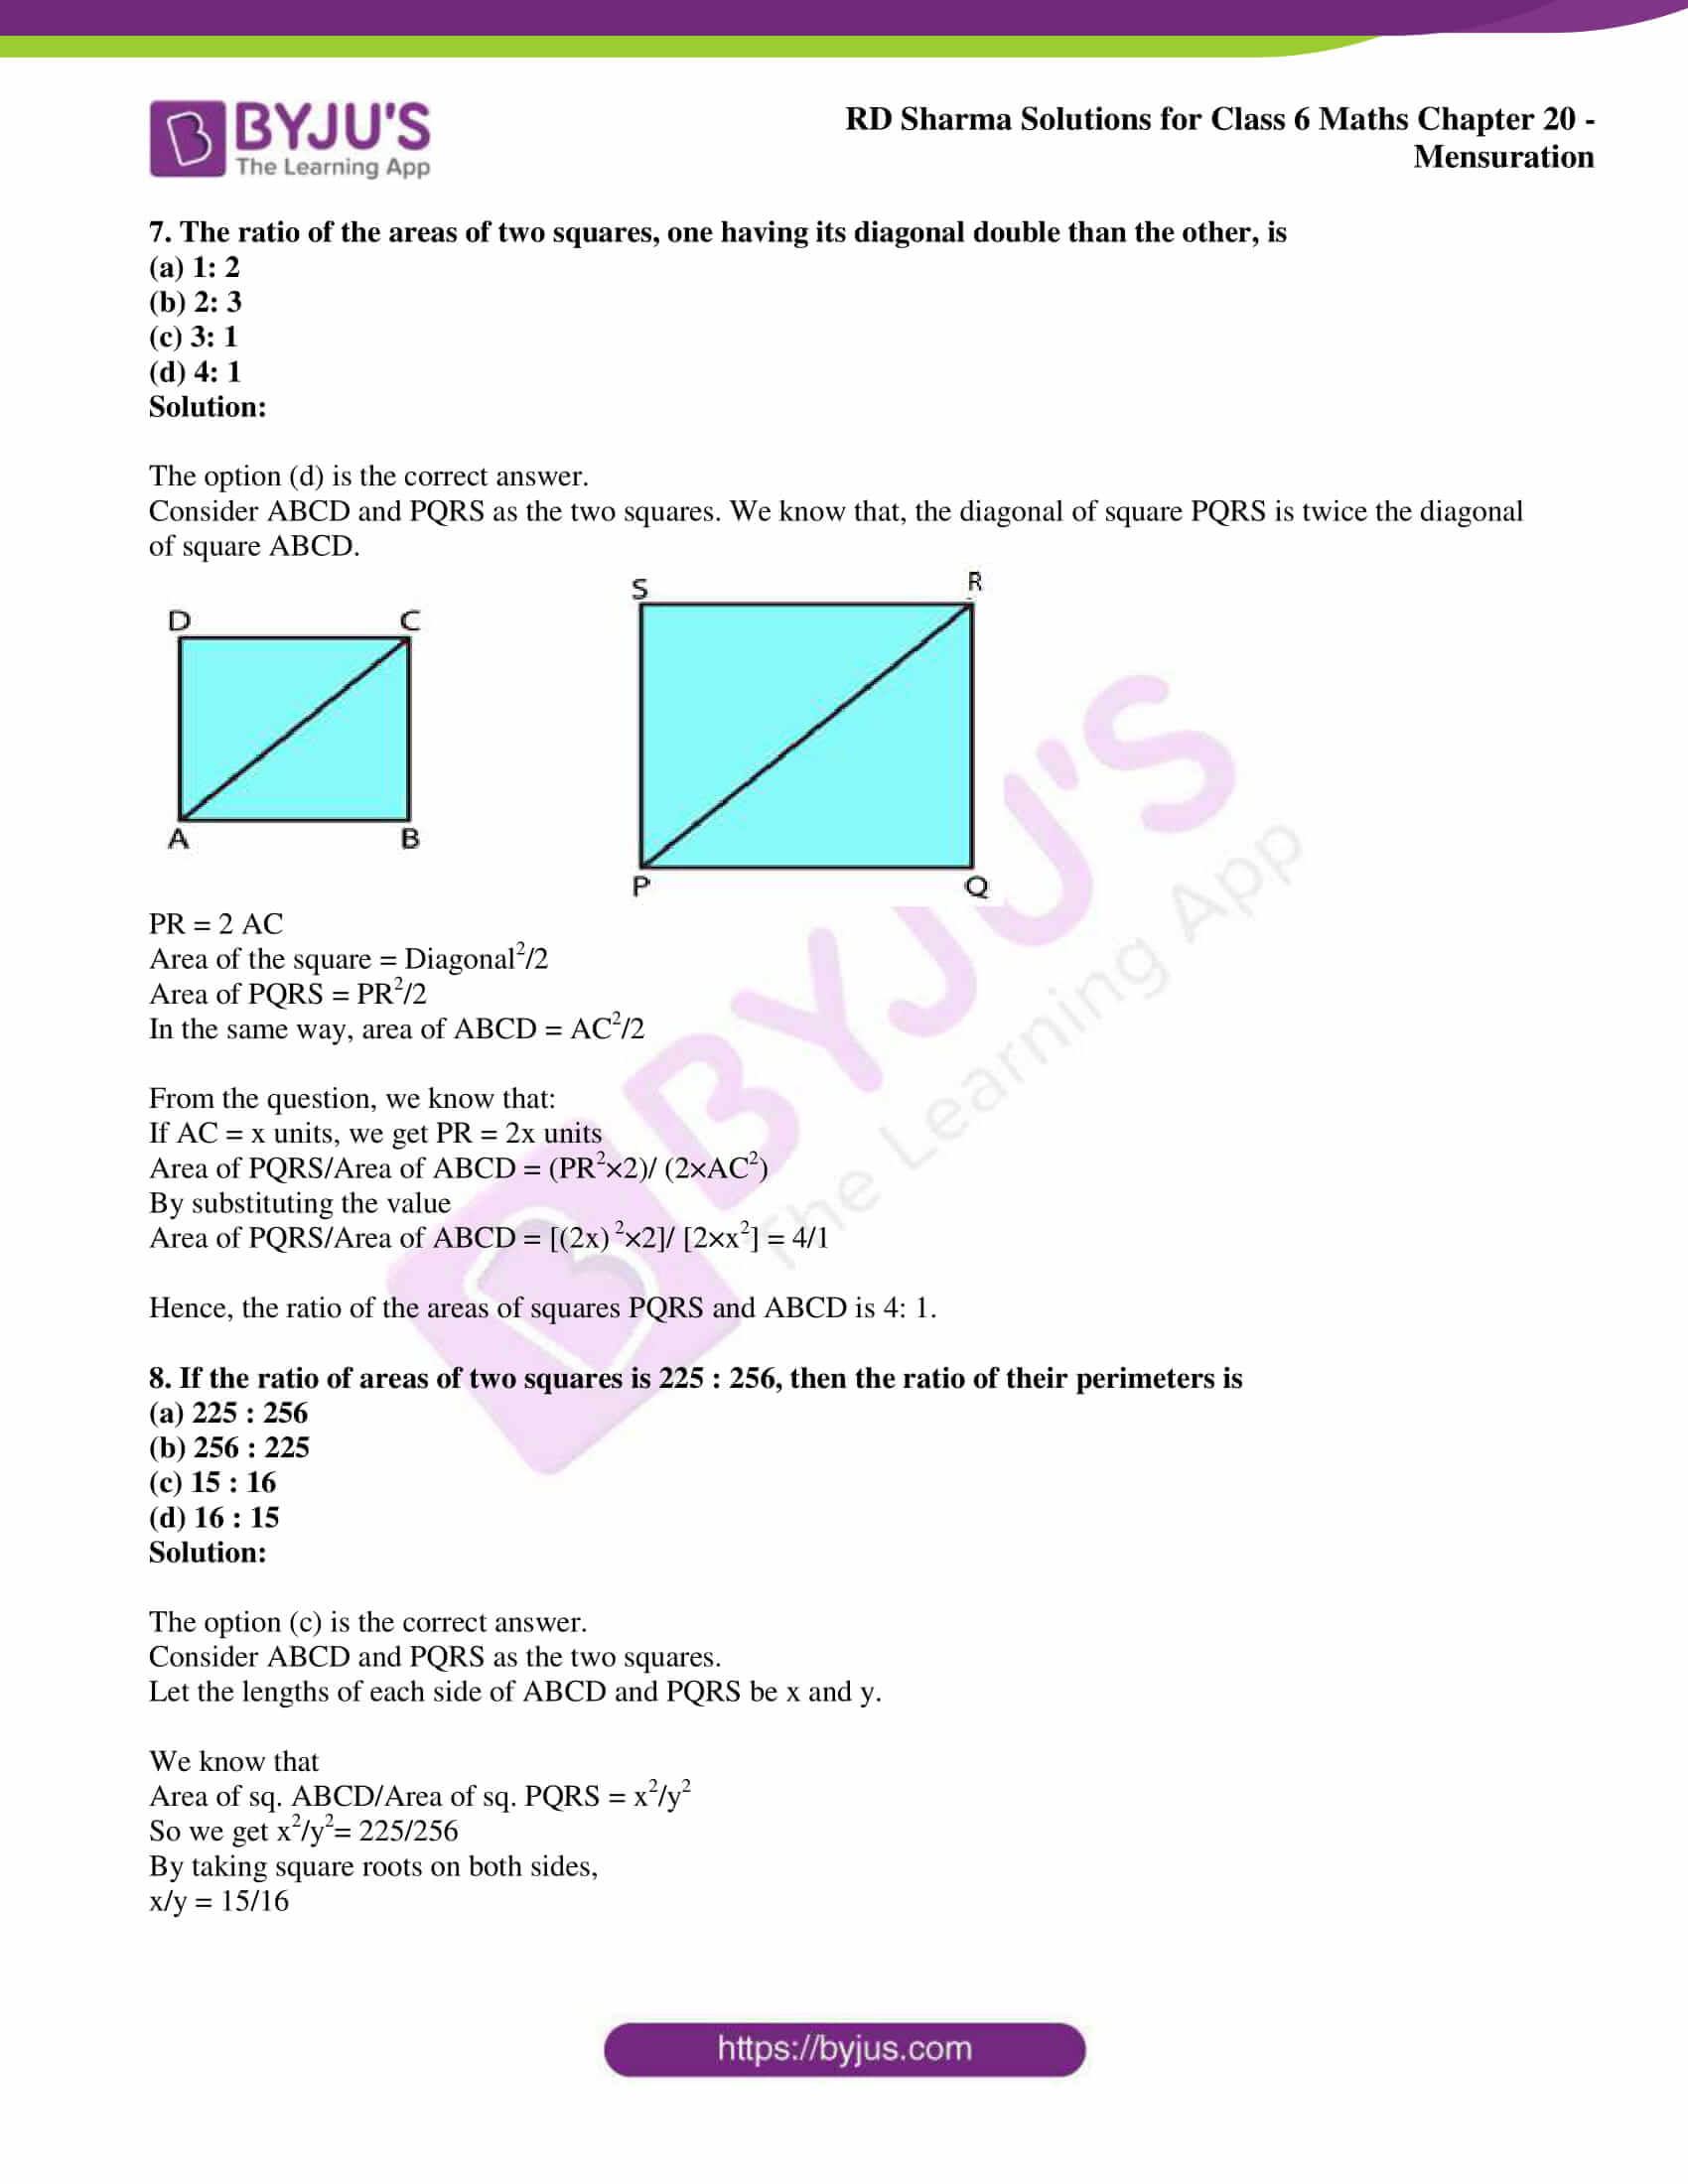 rd sharma solutions nov2020 class 6 maths chapter 20 exercise obj 4